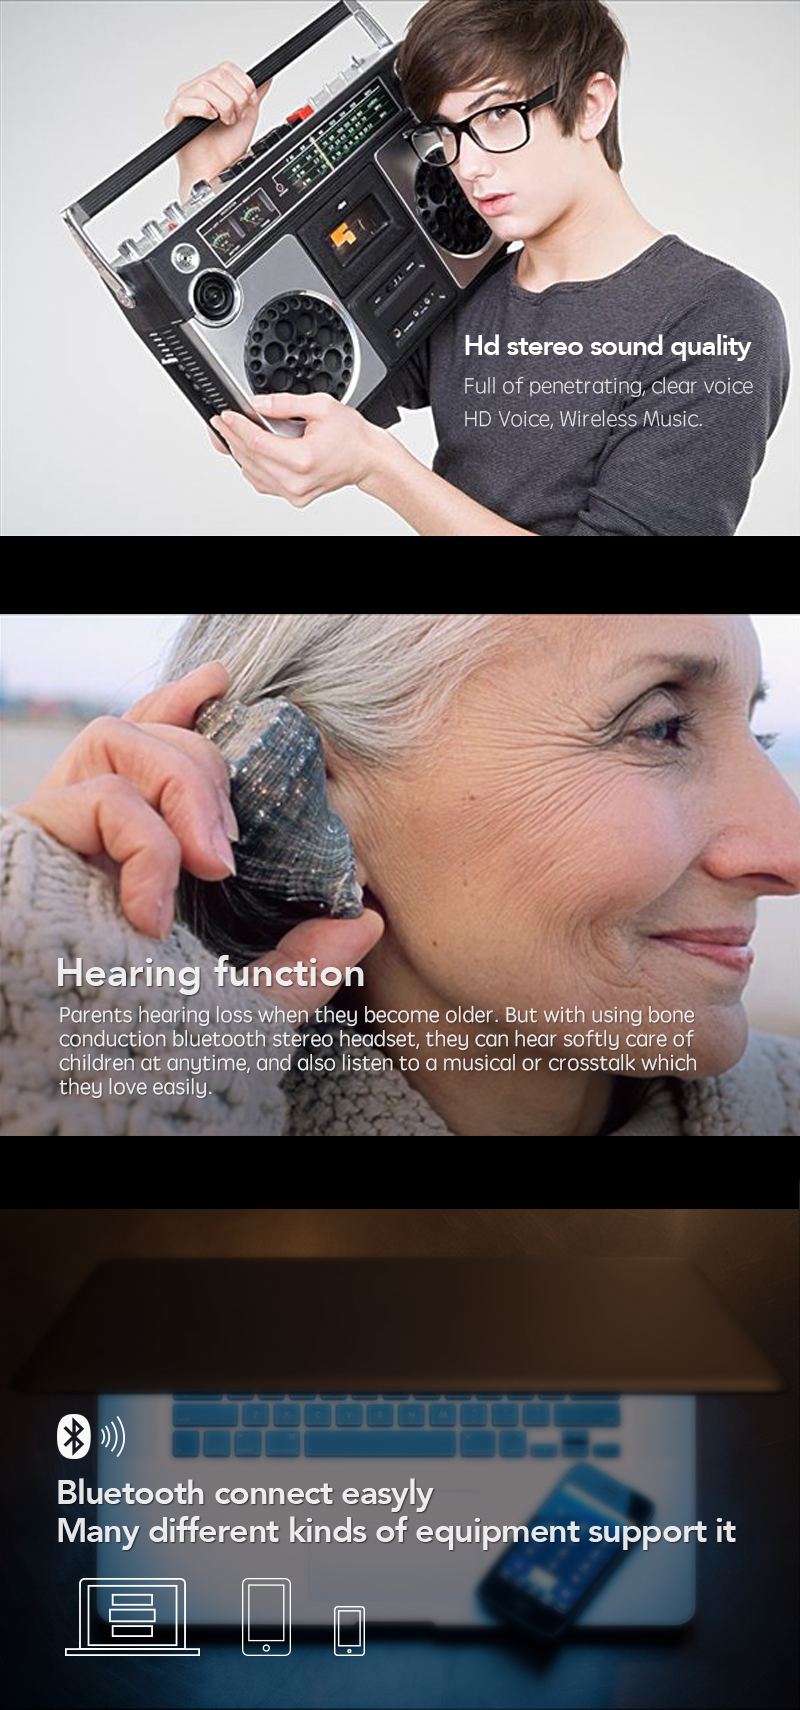 Smart Bone Conduction Wireless Bluetooth Stereo Ear Headset Outdoor Sports Music Earphone